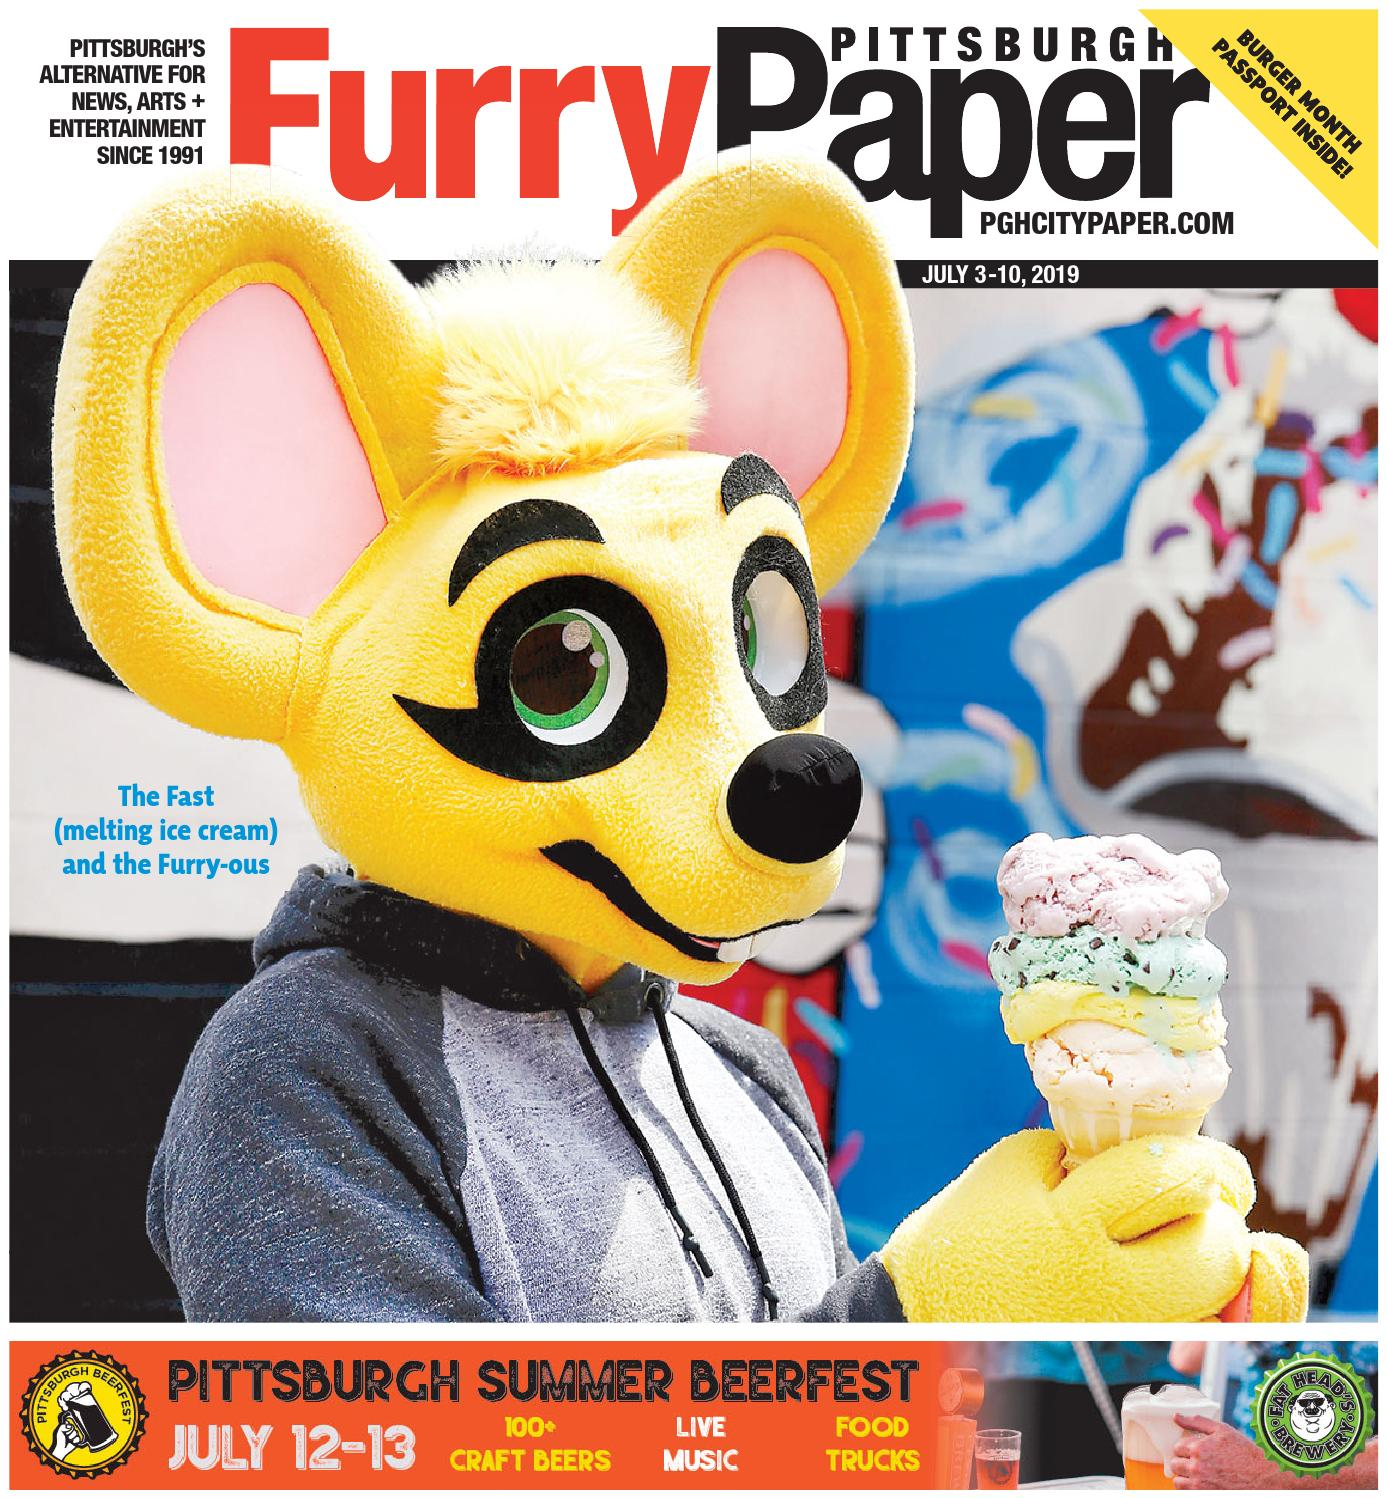 Animal Cracker Furry Porn july 3, 2019 - pittsburgh city paperpittsburgh city